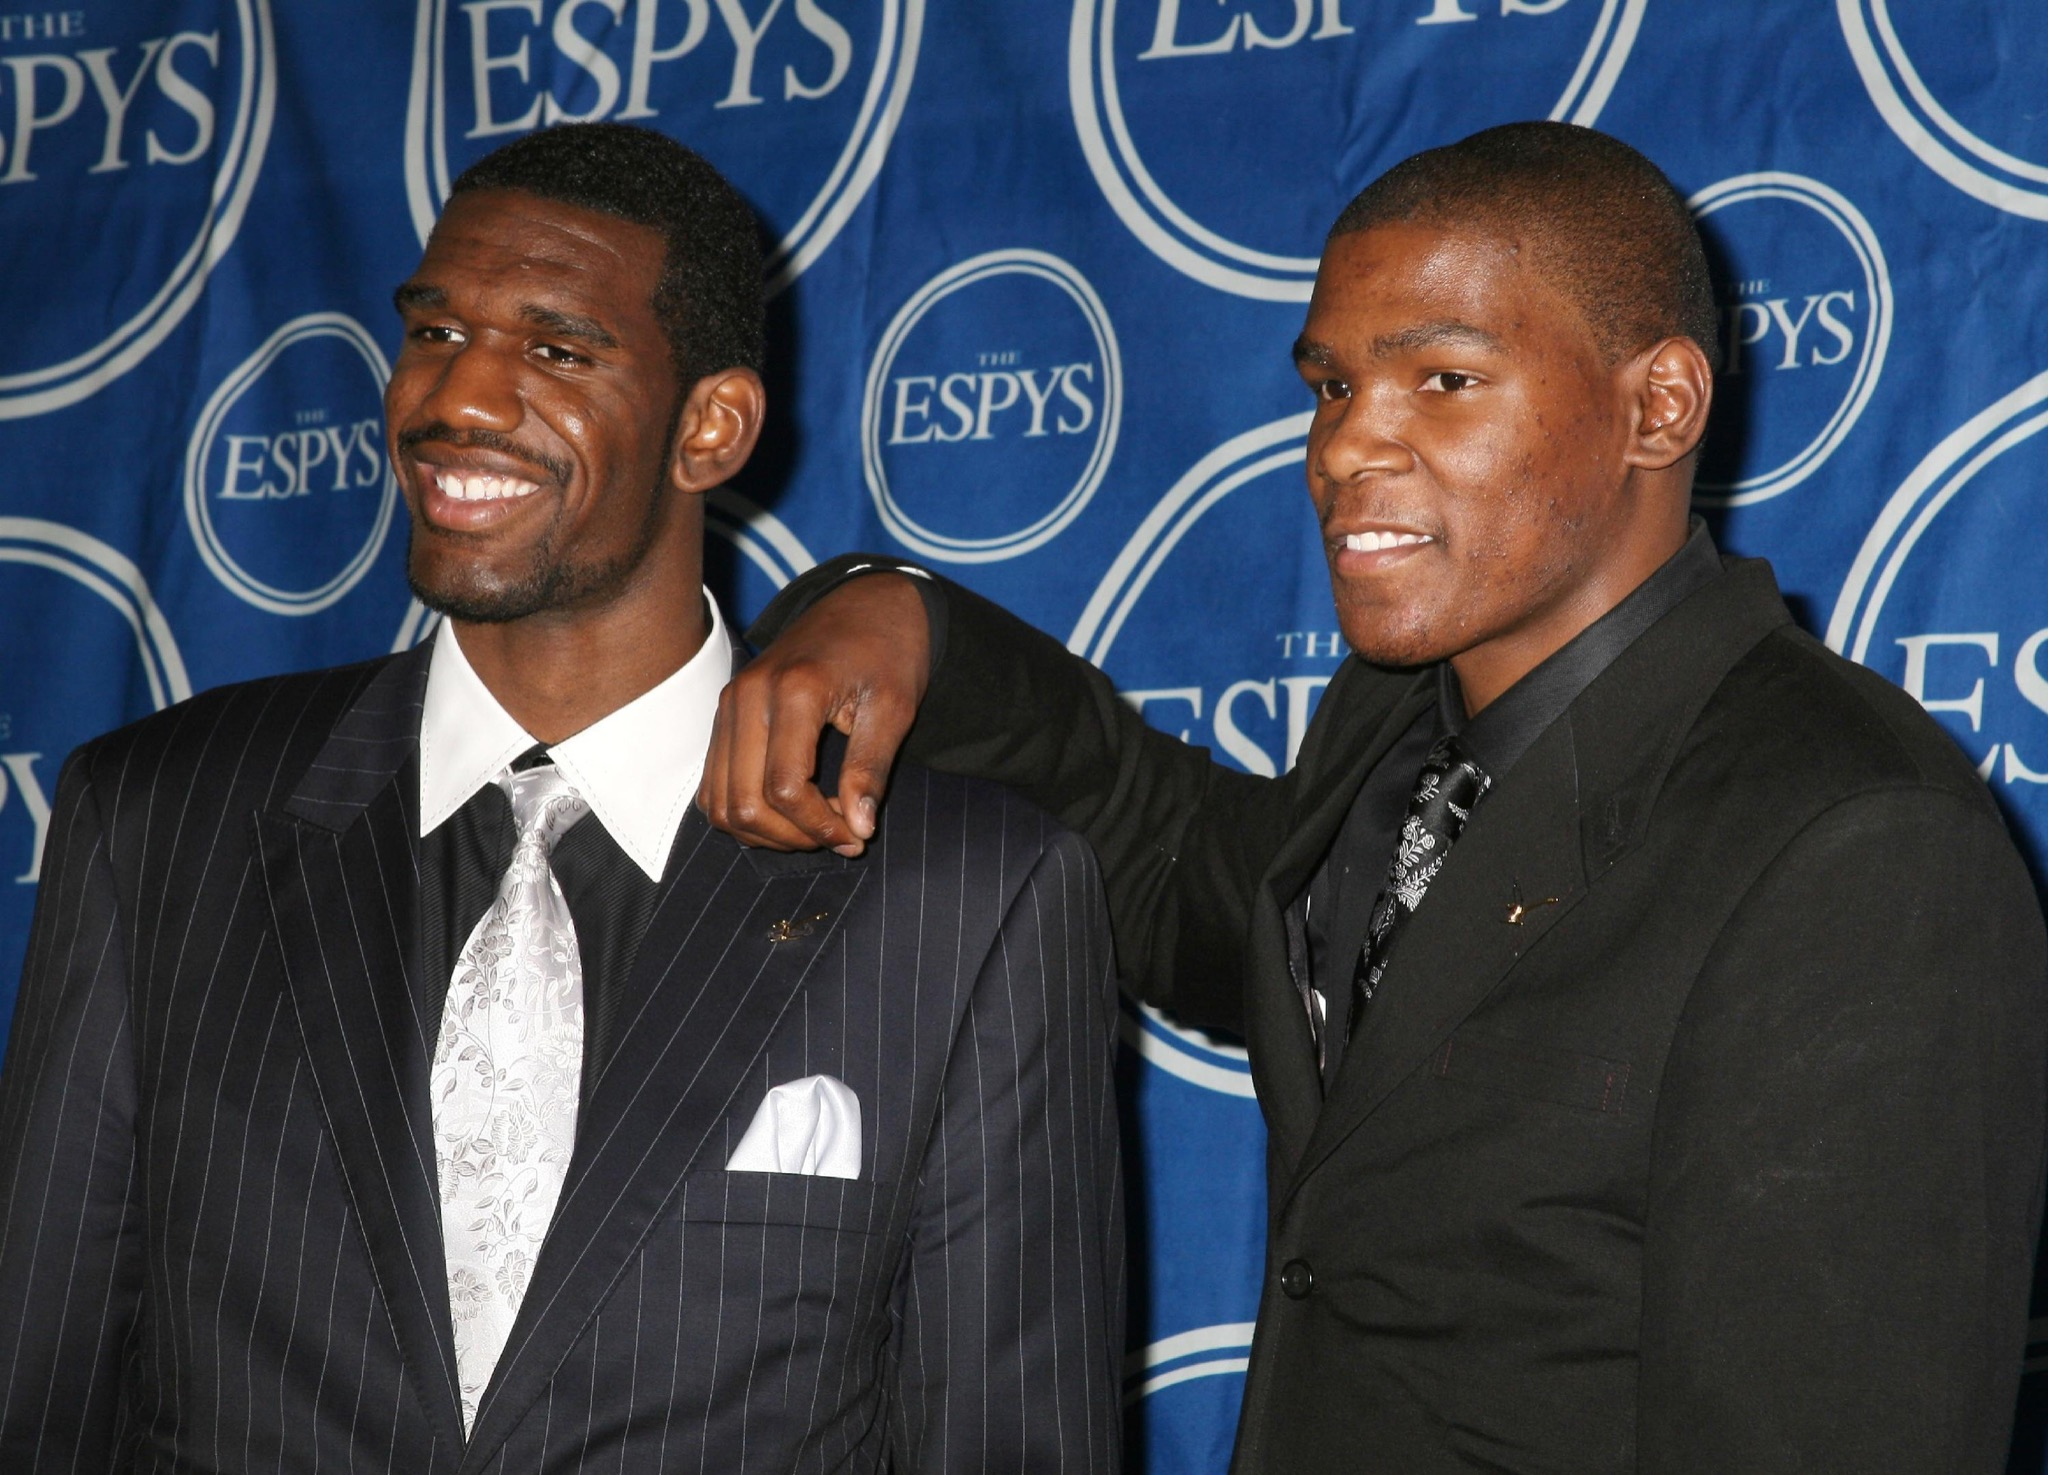 #ThrowbackThursday: Kevin Durant's Journey From Texas To NBA Star